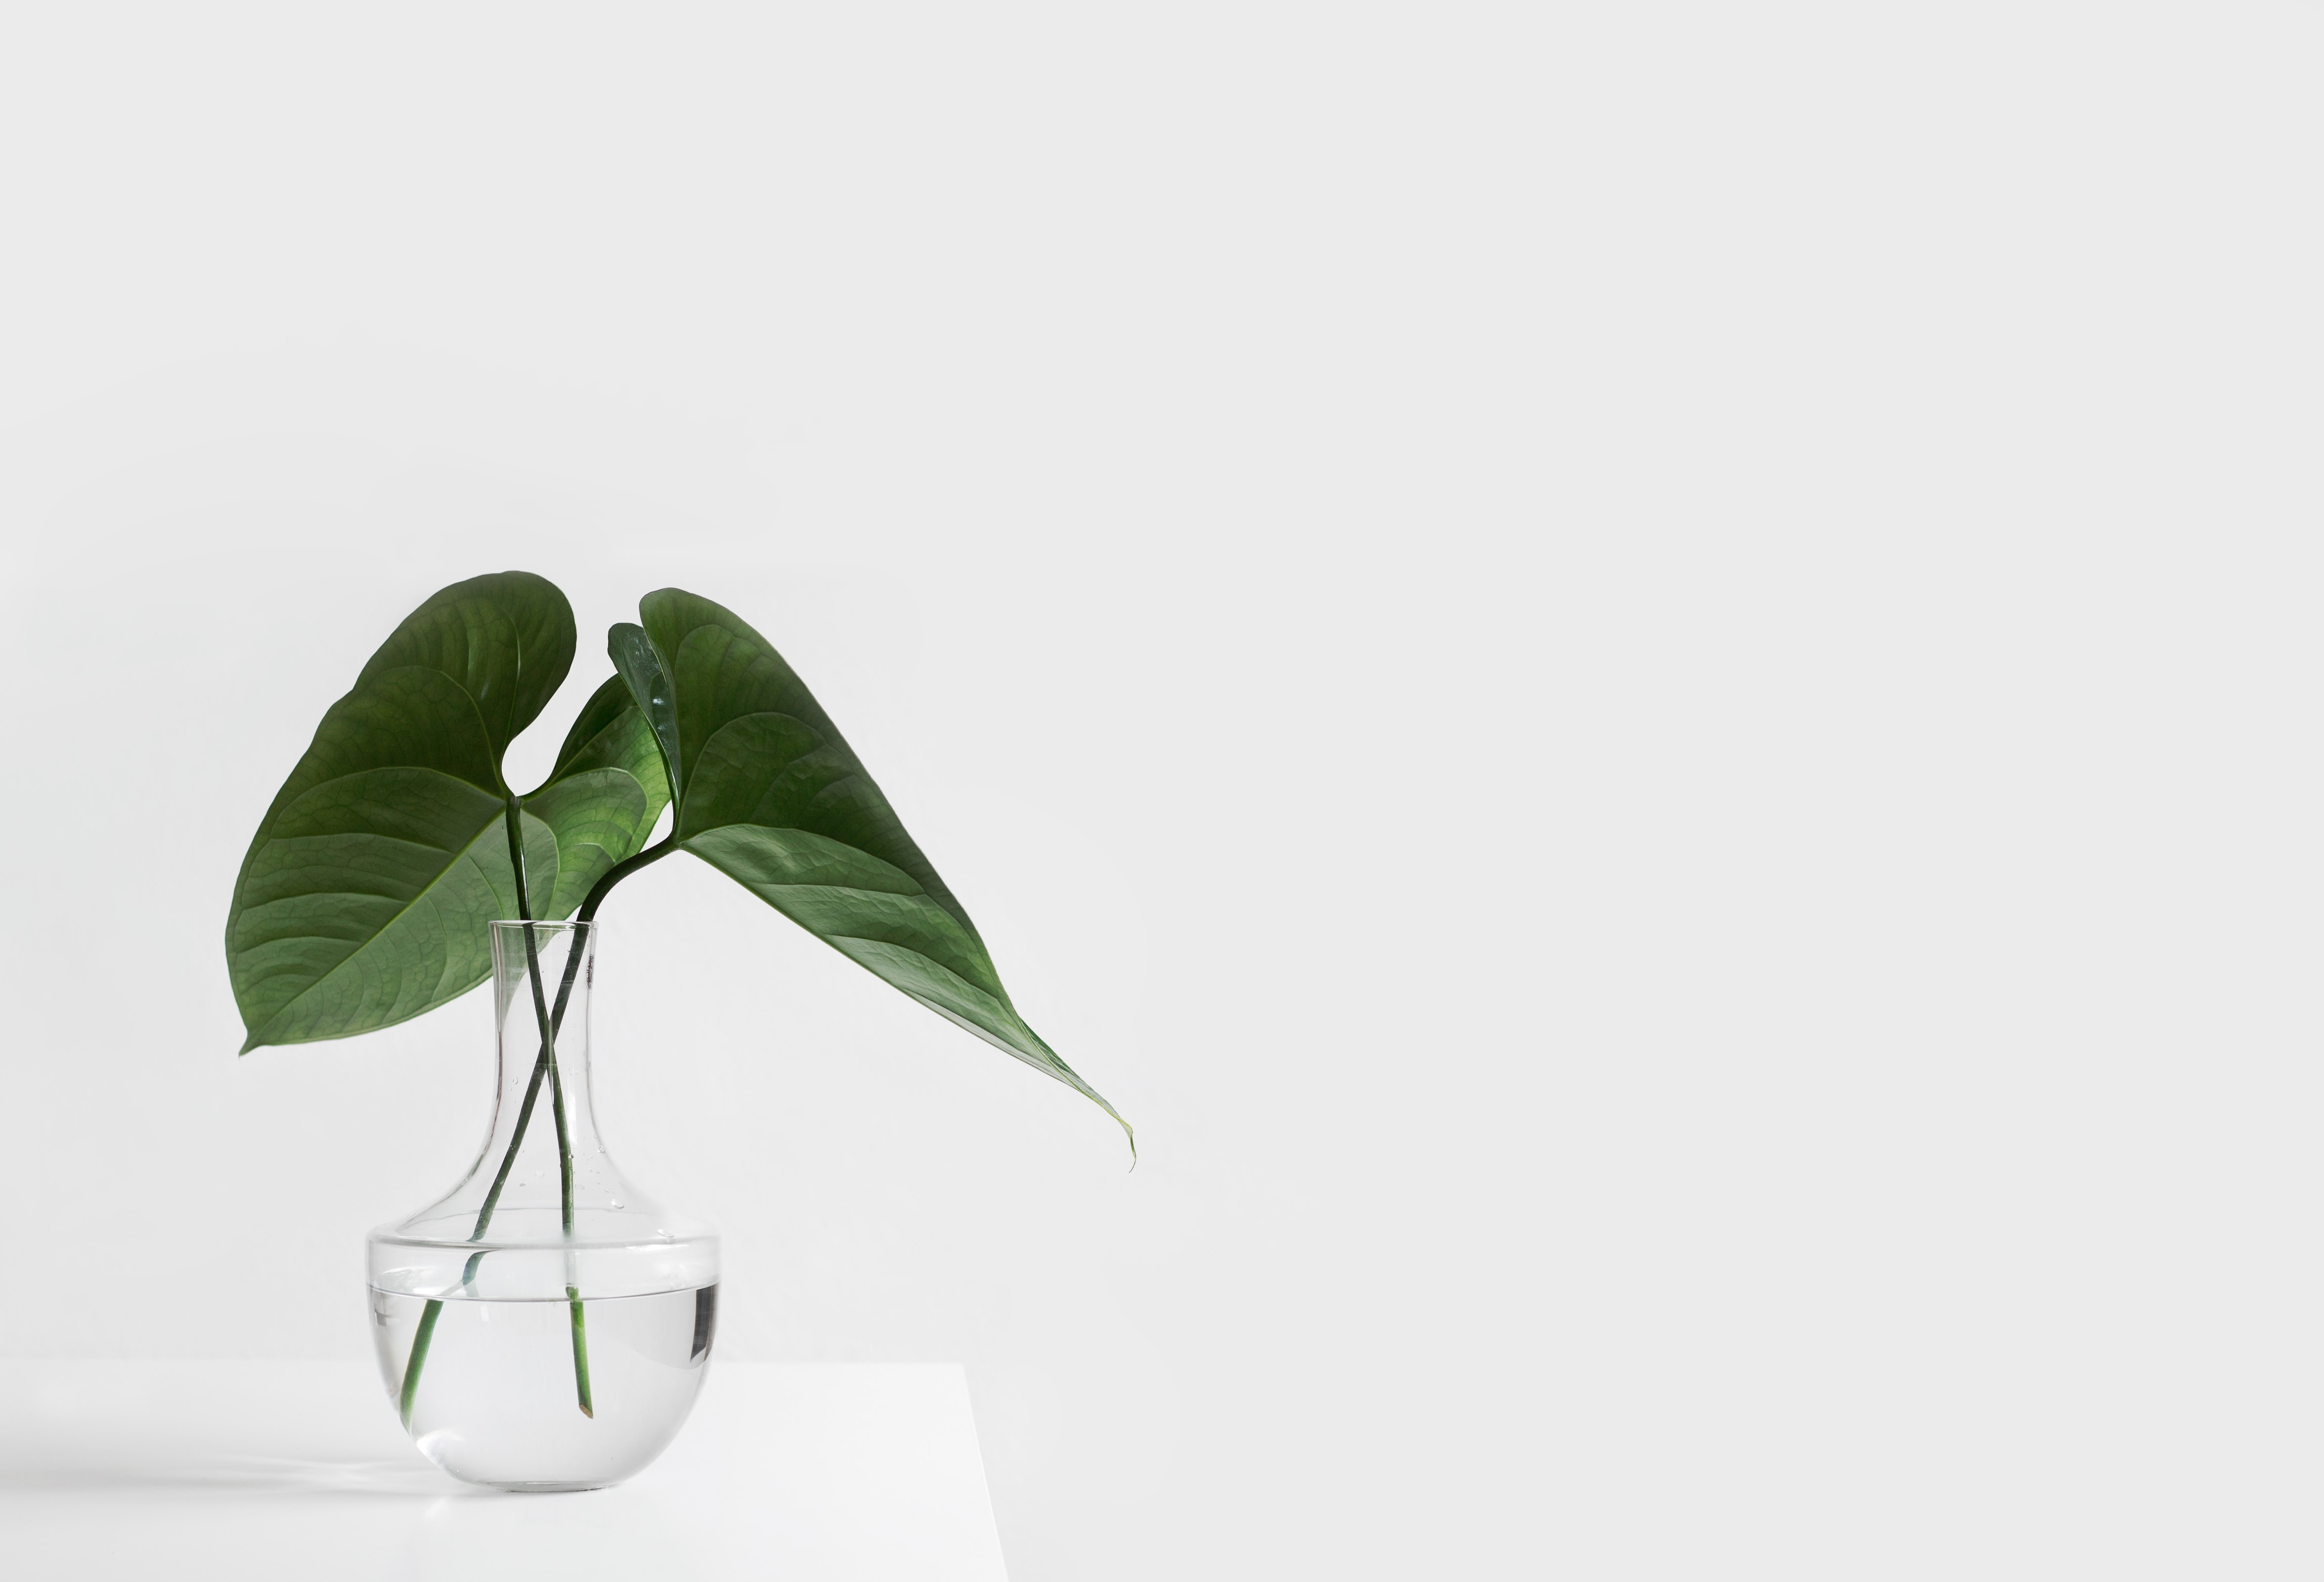 Green Span Go for Green: Make Insulated Metal Panels Part of a Sustainable Solution White Background Green Plant in Glass Vase